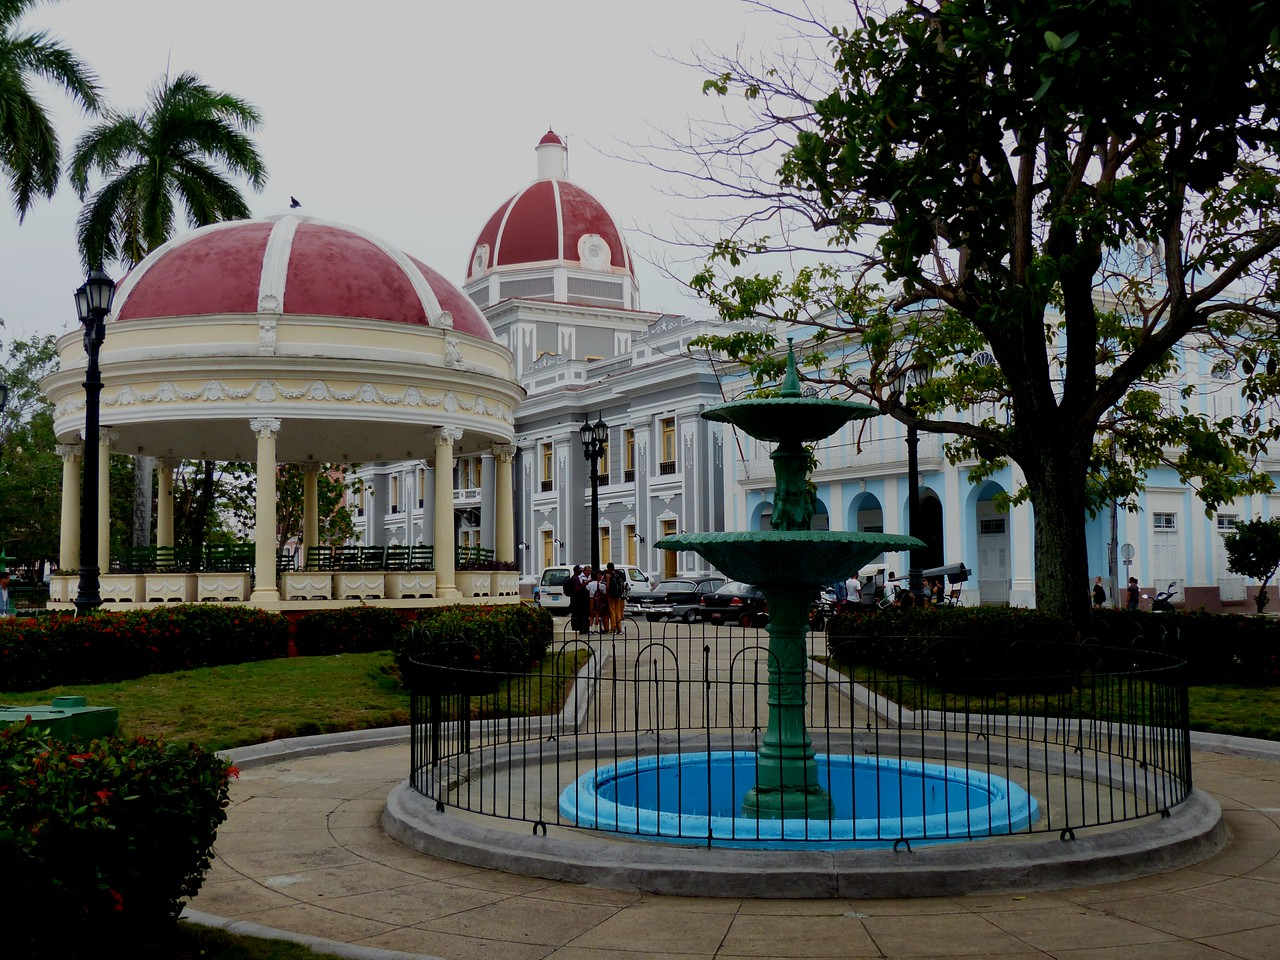 Cienfuegos - The city center is a World Heritage site